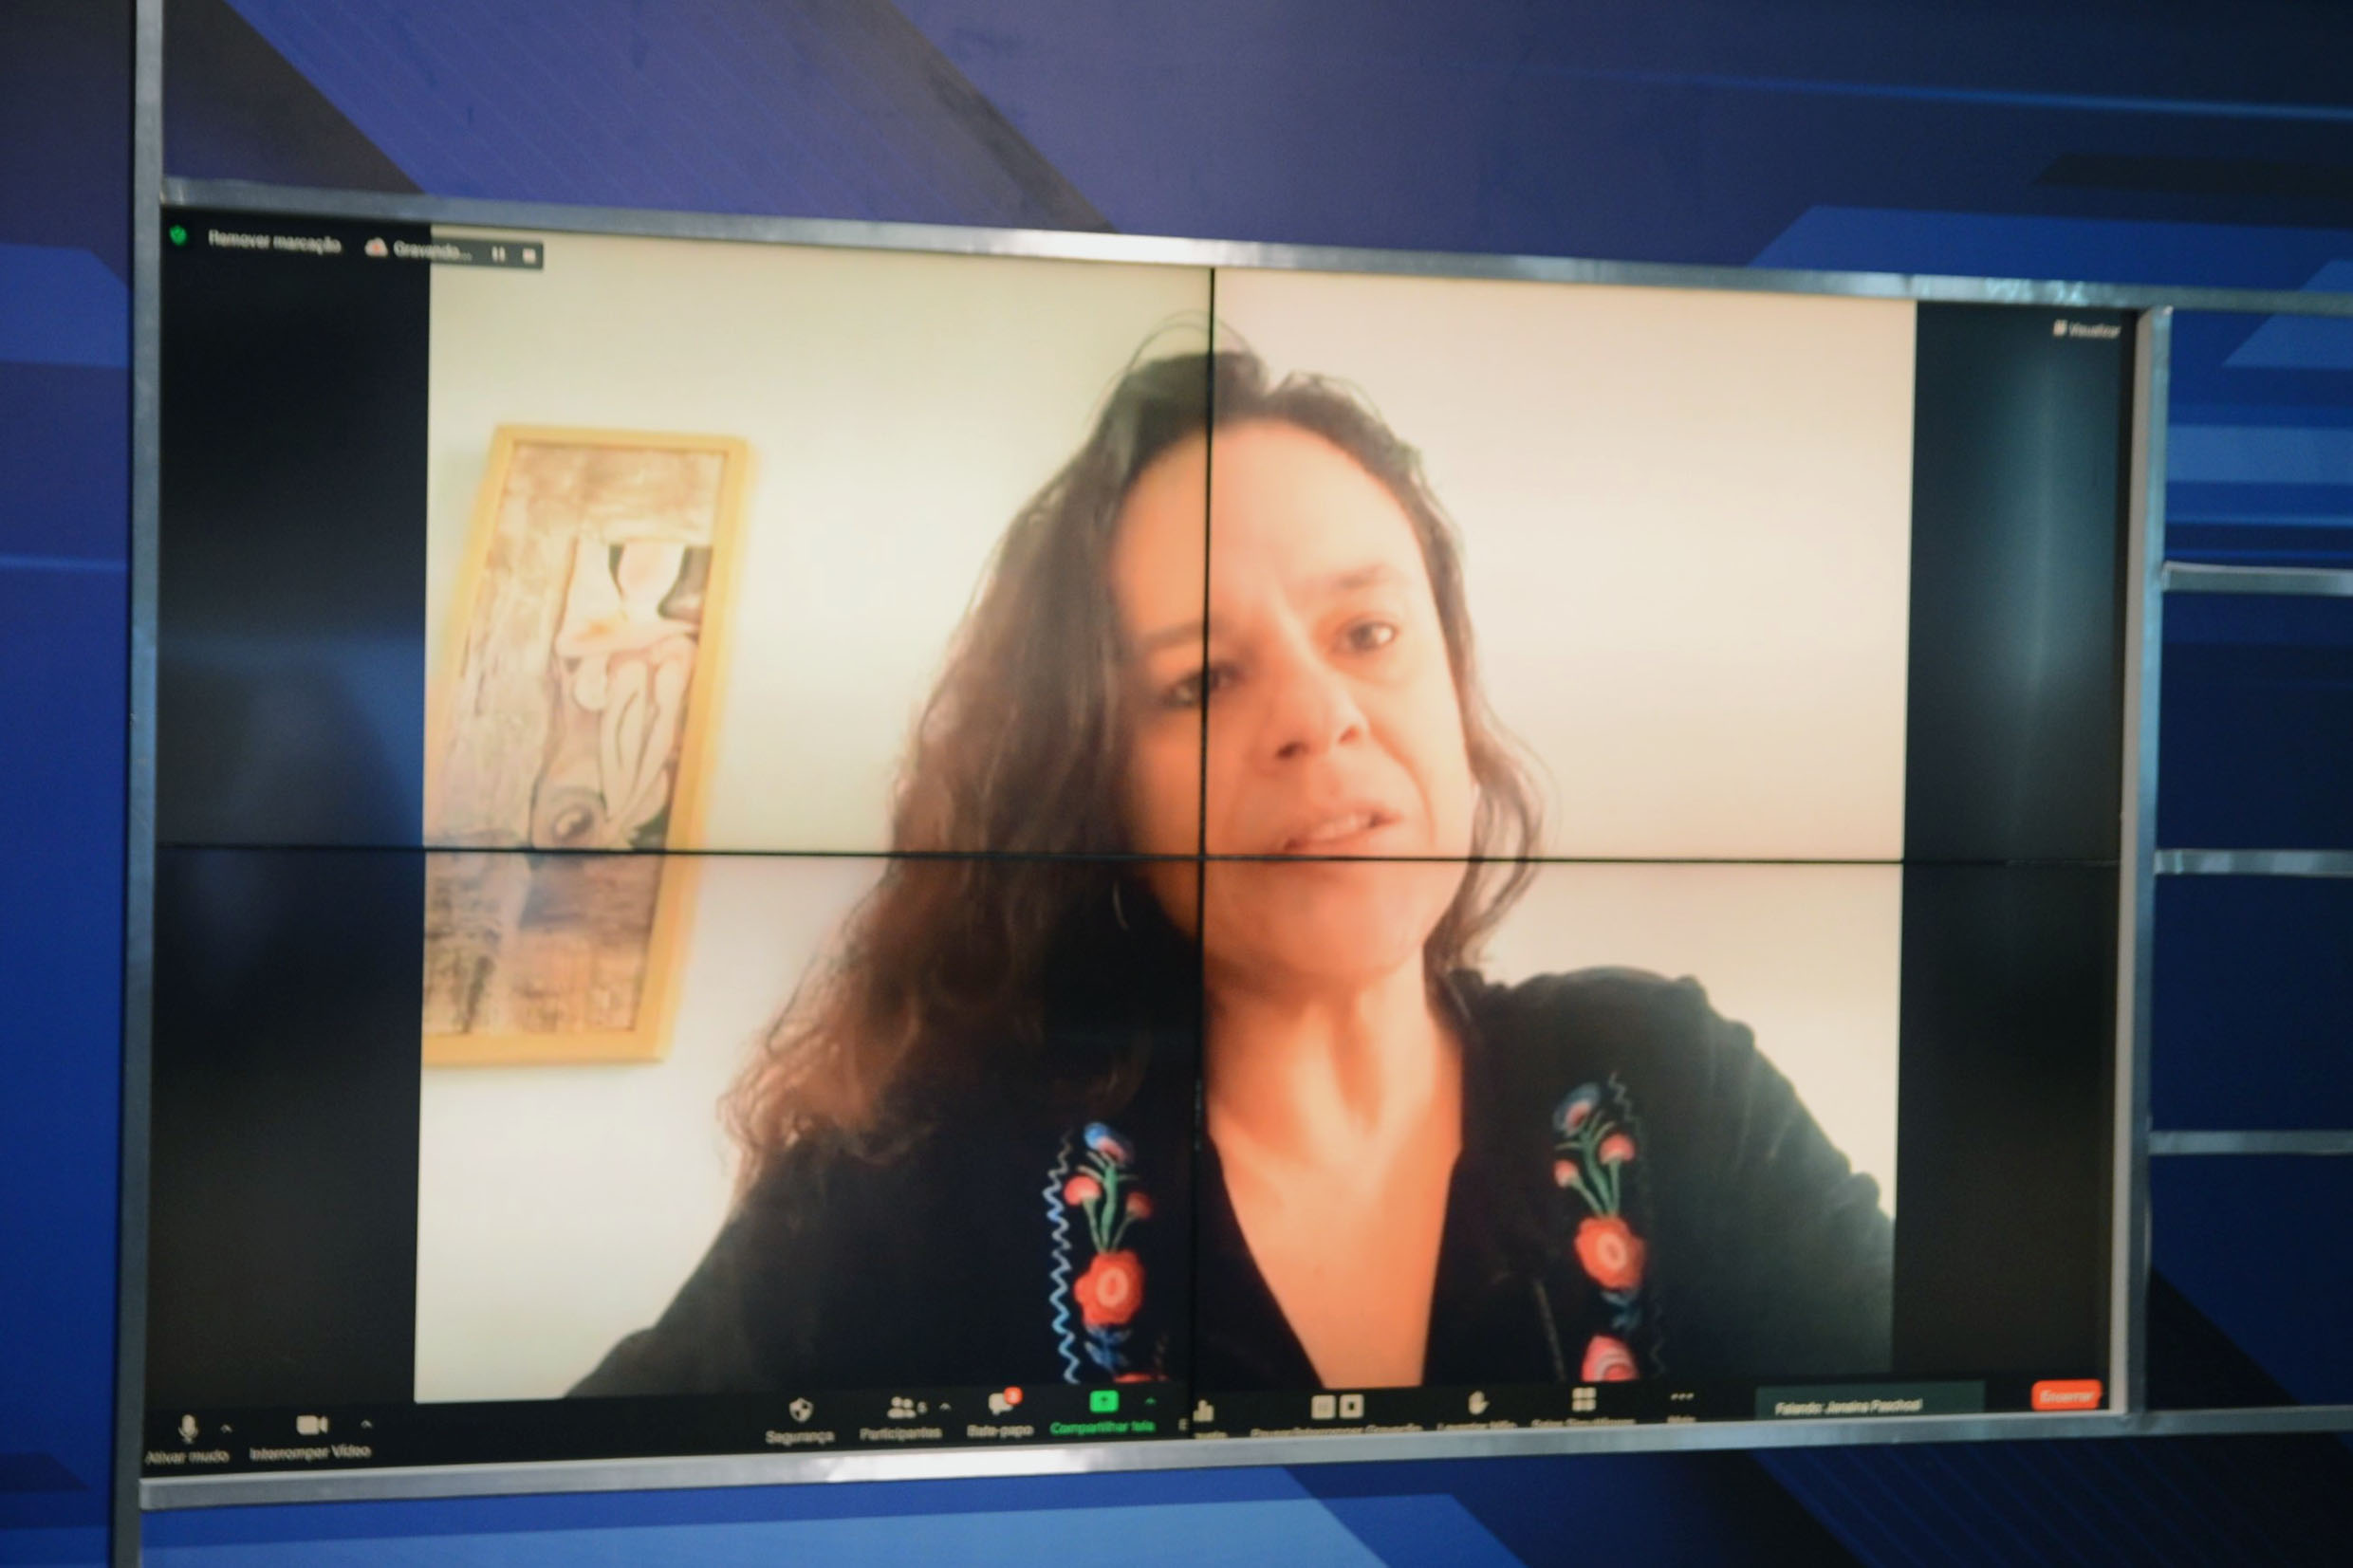 Janaina Paschoal na Tribuna Virtual<a style='float:right' href='https://www3.al.sp.gov.br/repositorio/noticia/N-05-2021/fg265995.jpg' target=_blank><img src='/_img/material-file-download-white.png' width='14px' alt='Clique para baixar a imagem'></a>